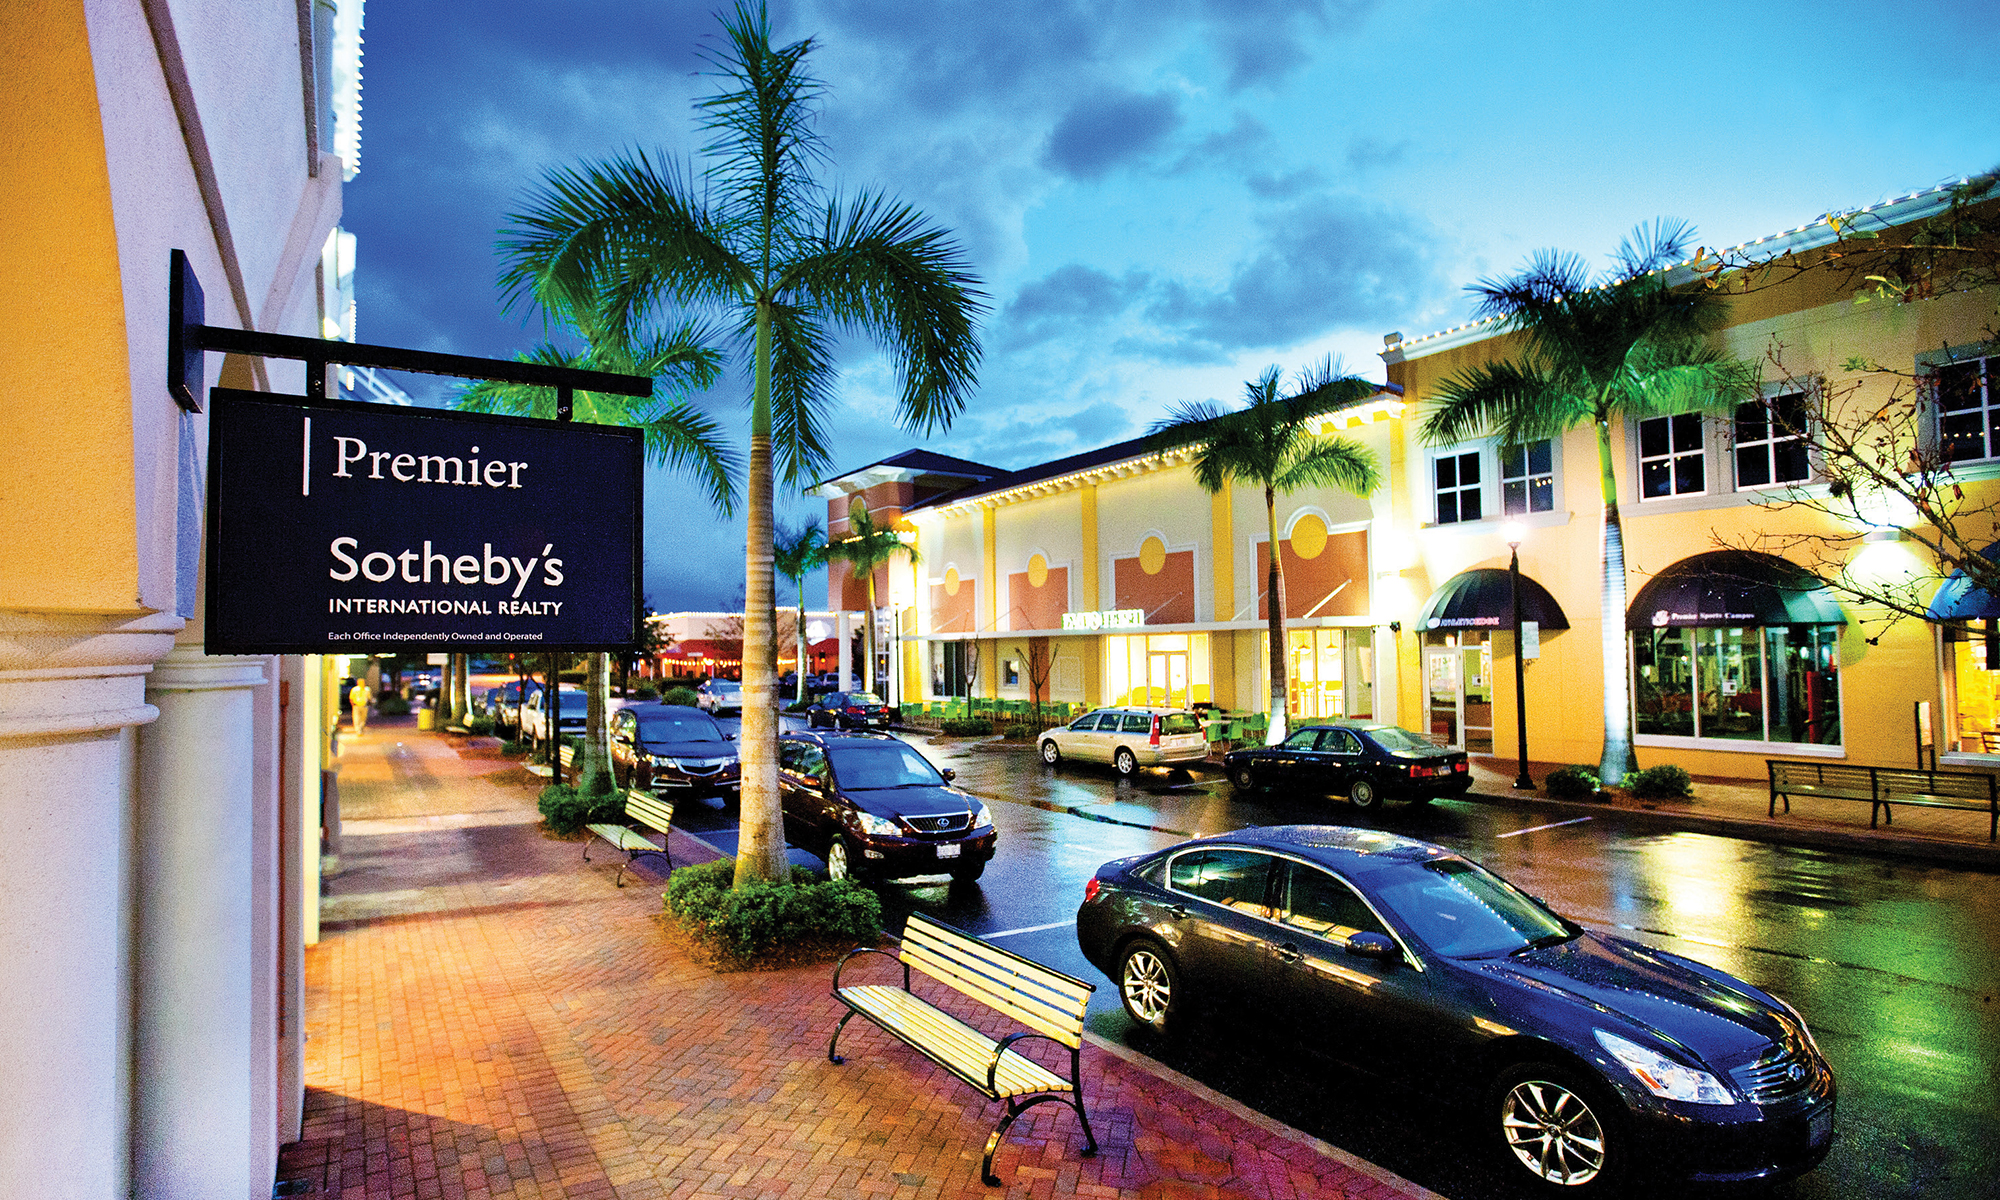 Premier Sotheby's International Realty Lakewood Ranch